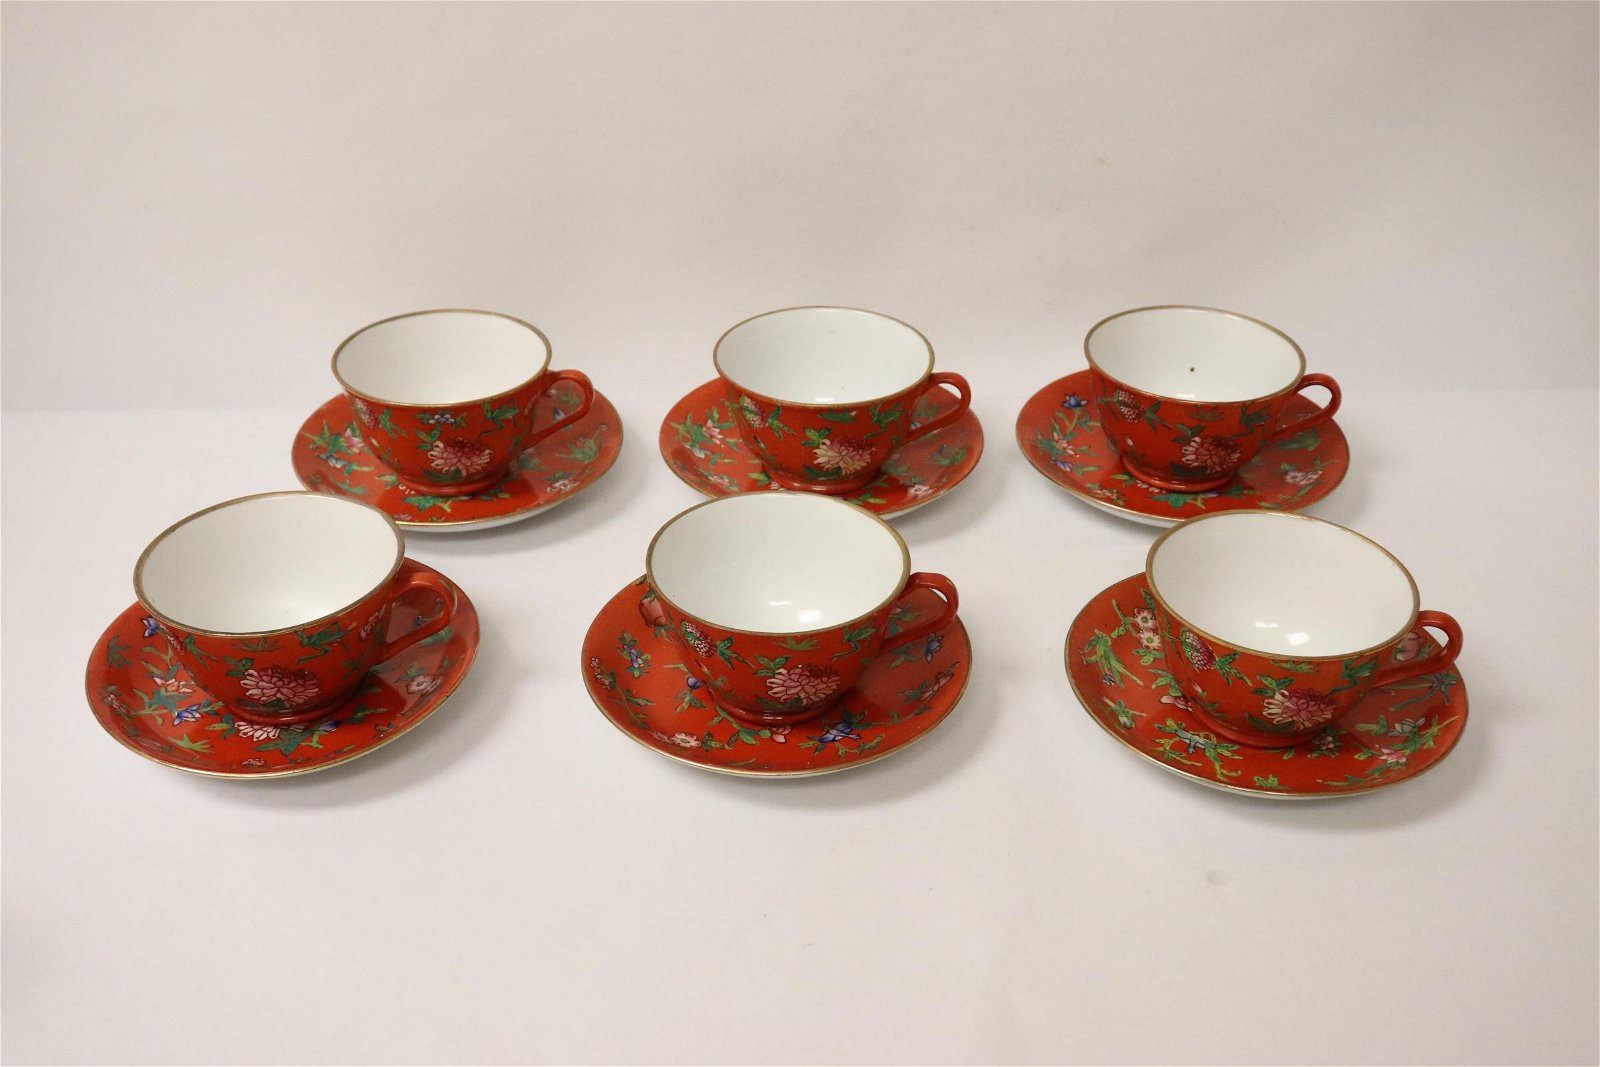 6 Chinese 19th/20th c. porcelain tea cups & underplates